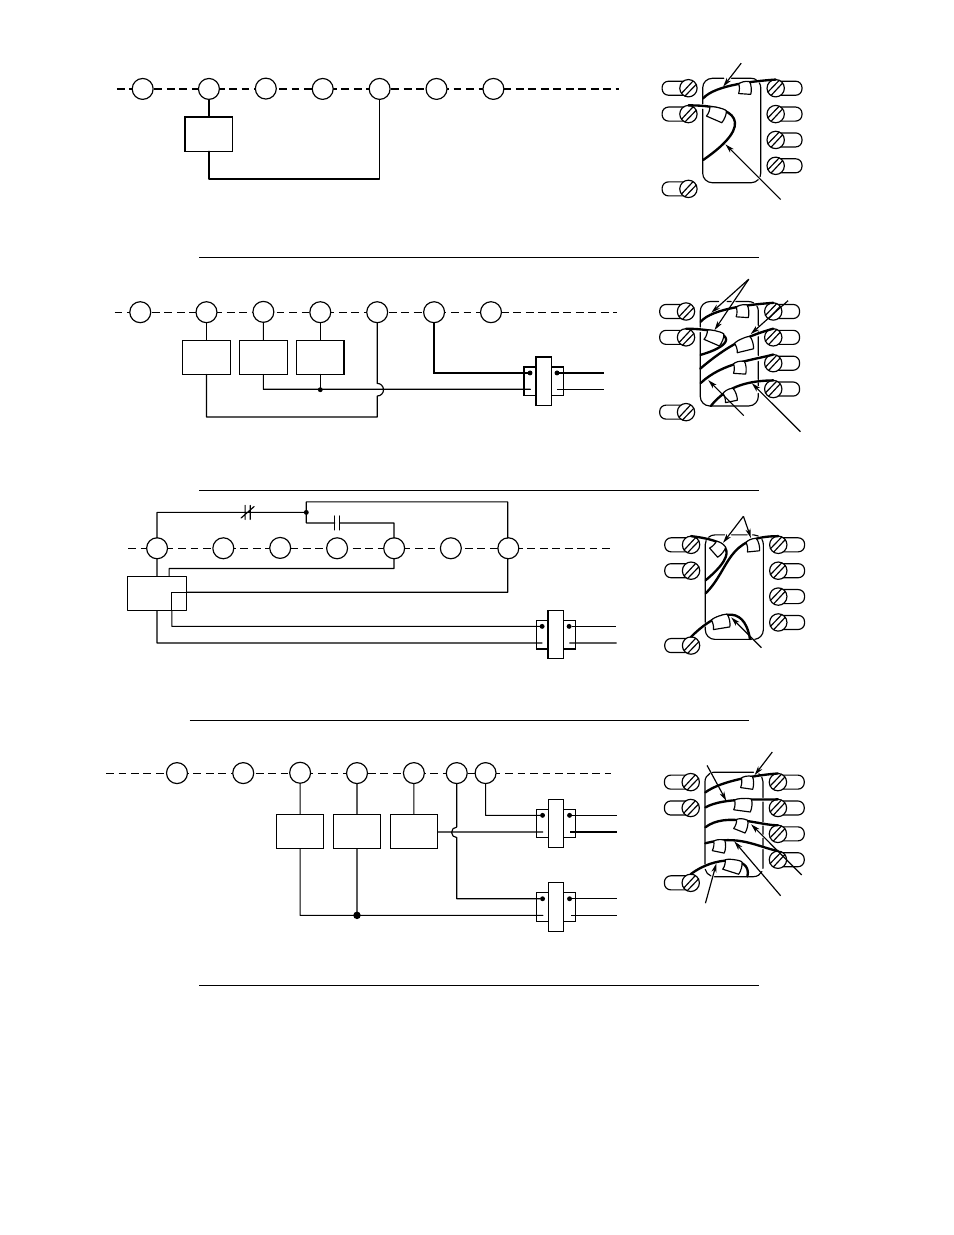 hight resolution of white rodger zone valve wiring diagram